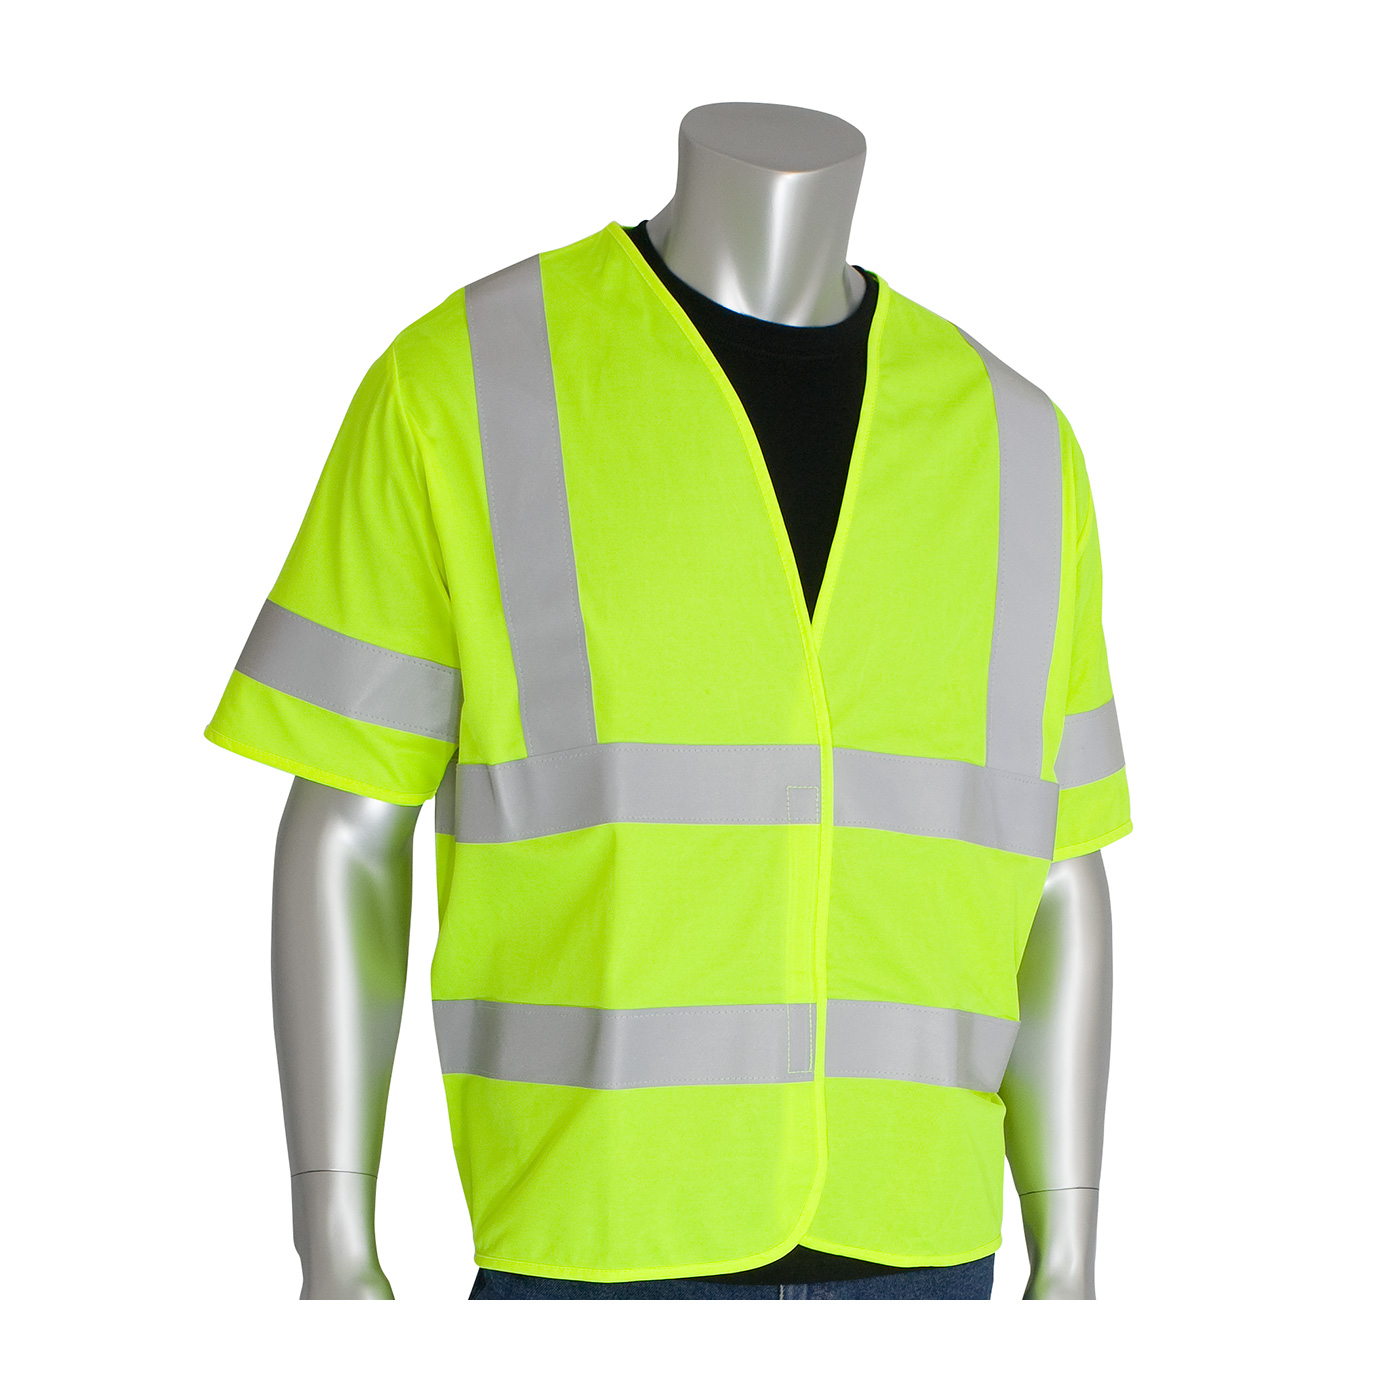 PIP 305-HSSVFRLY ANSI Class 3 FR-Treated Solid Fabric Vest, Hi Vis Lime Yellow